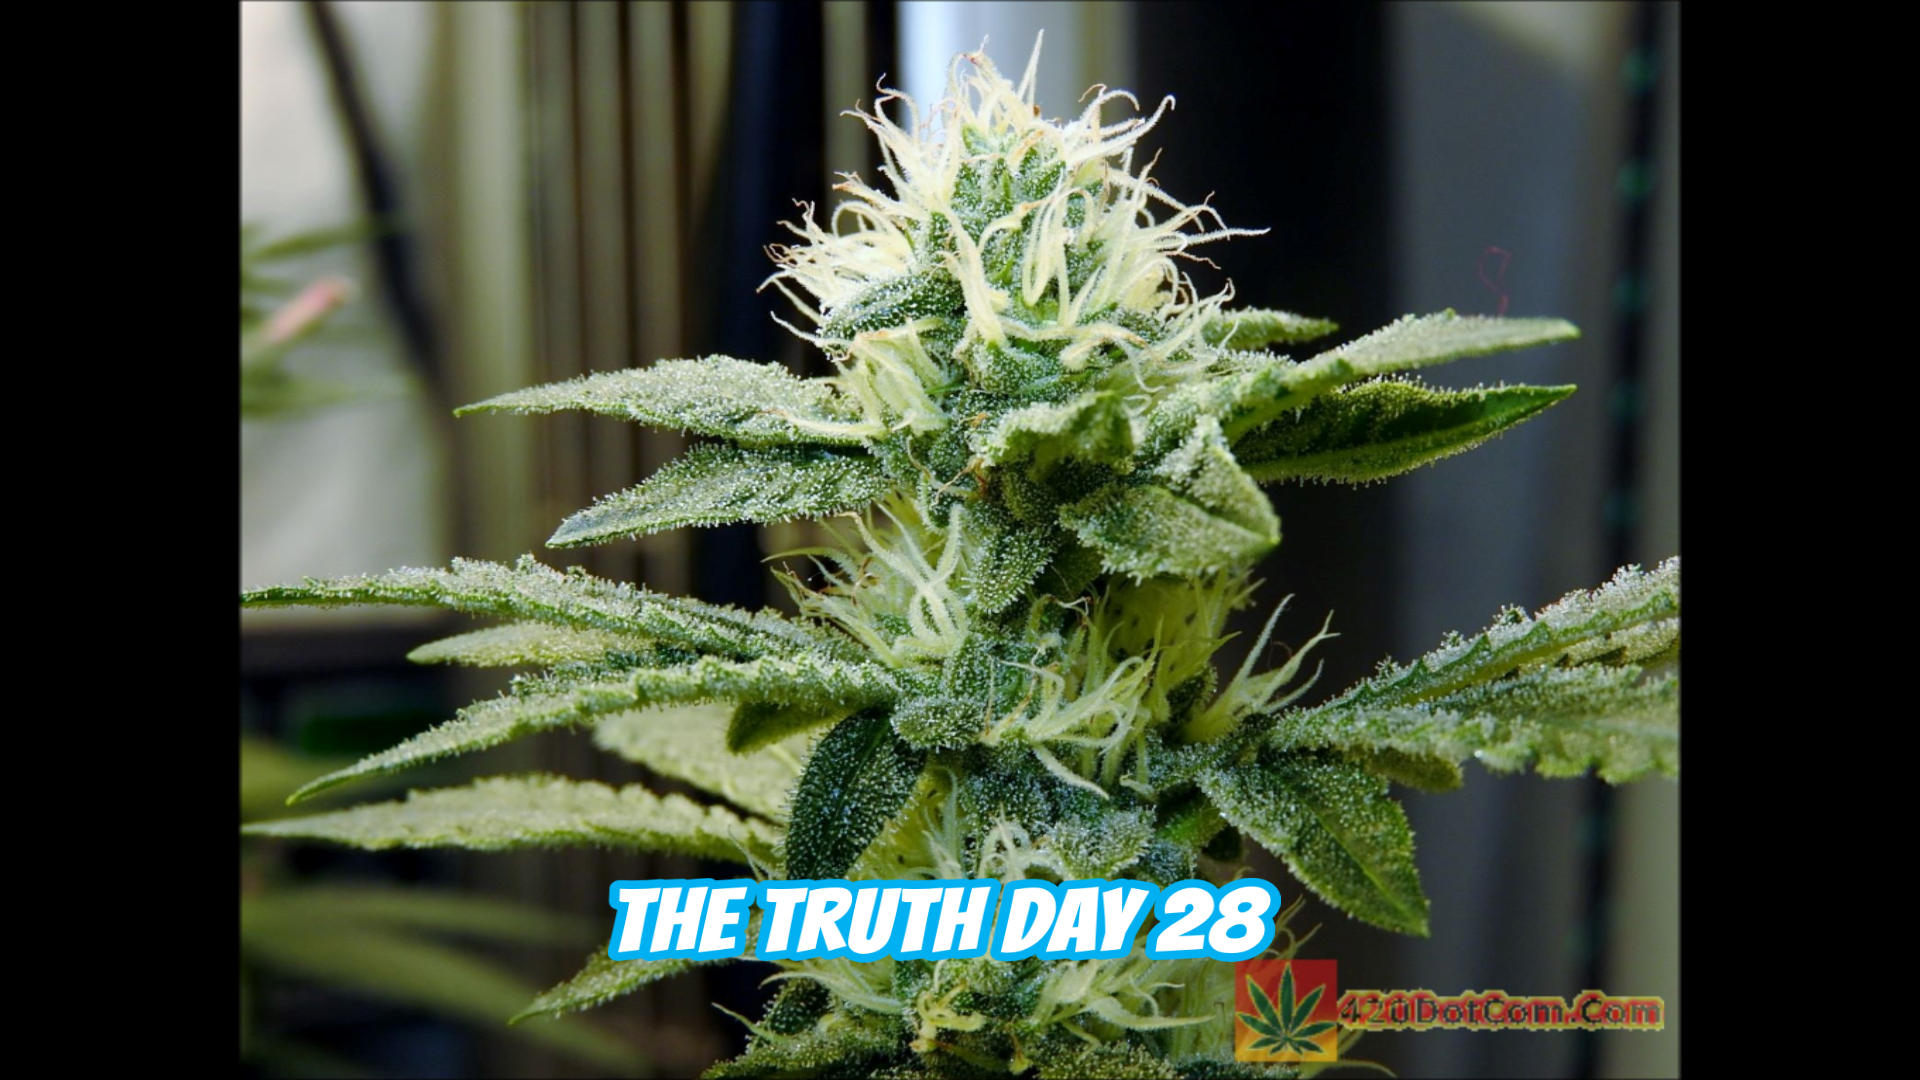 The Truth Day 28 Triangle Kush Cross On New Millenium Nutrients